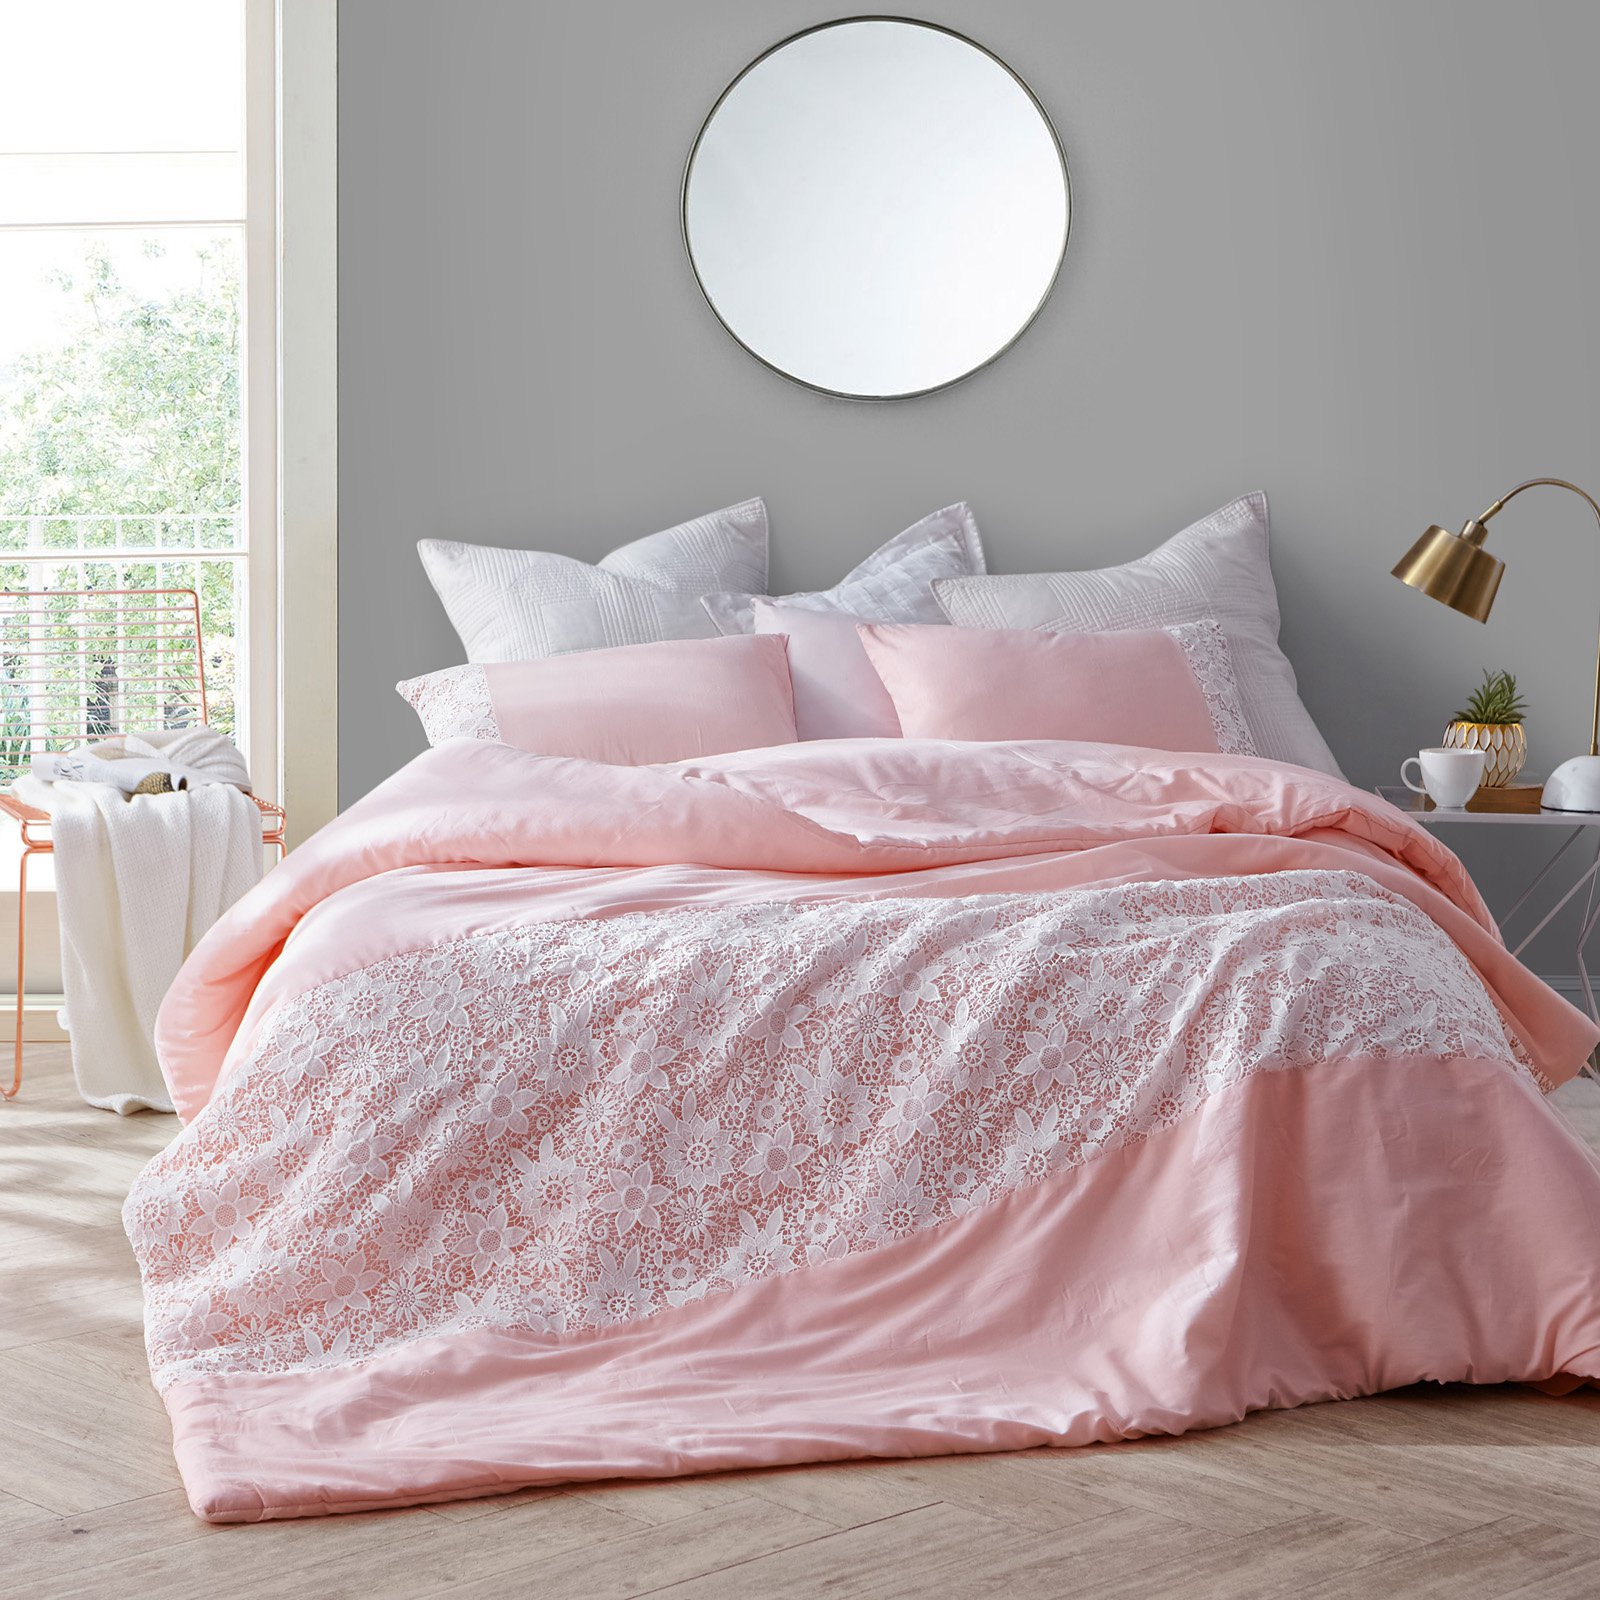 White Lace Duvet Cover By Byourbed Rose Quartz Size King Lace